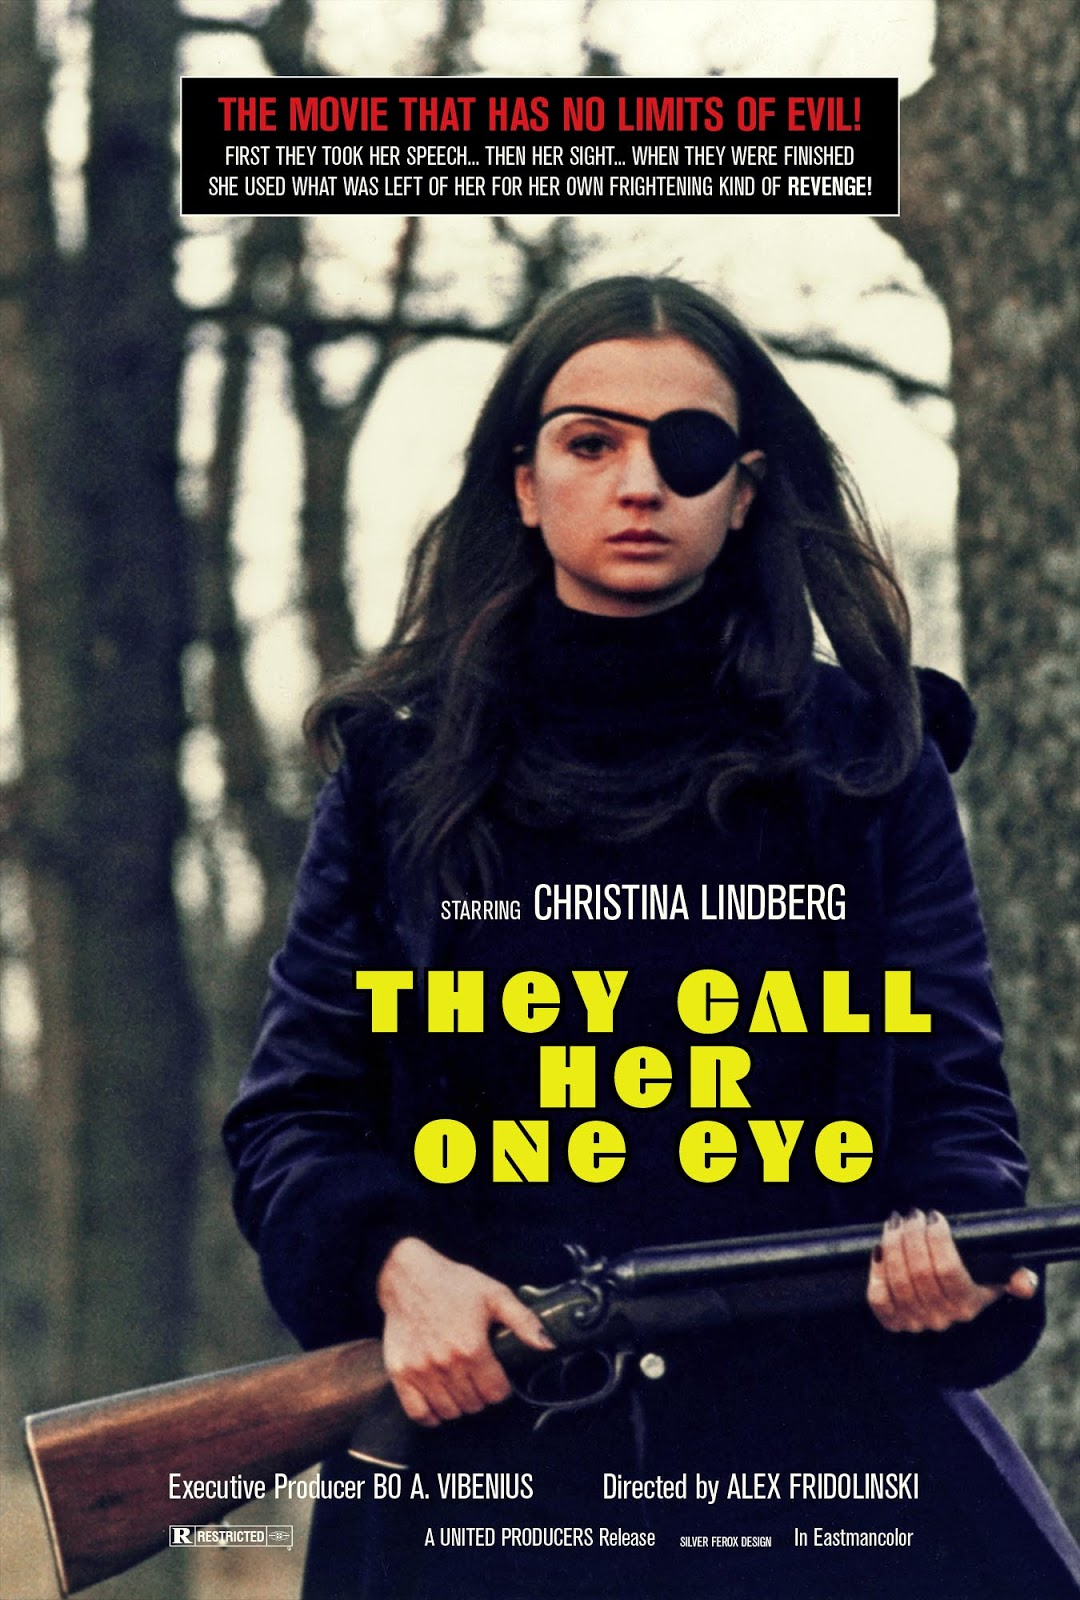 As they call eyes 71